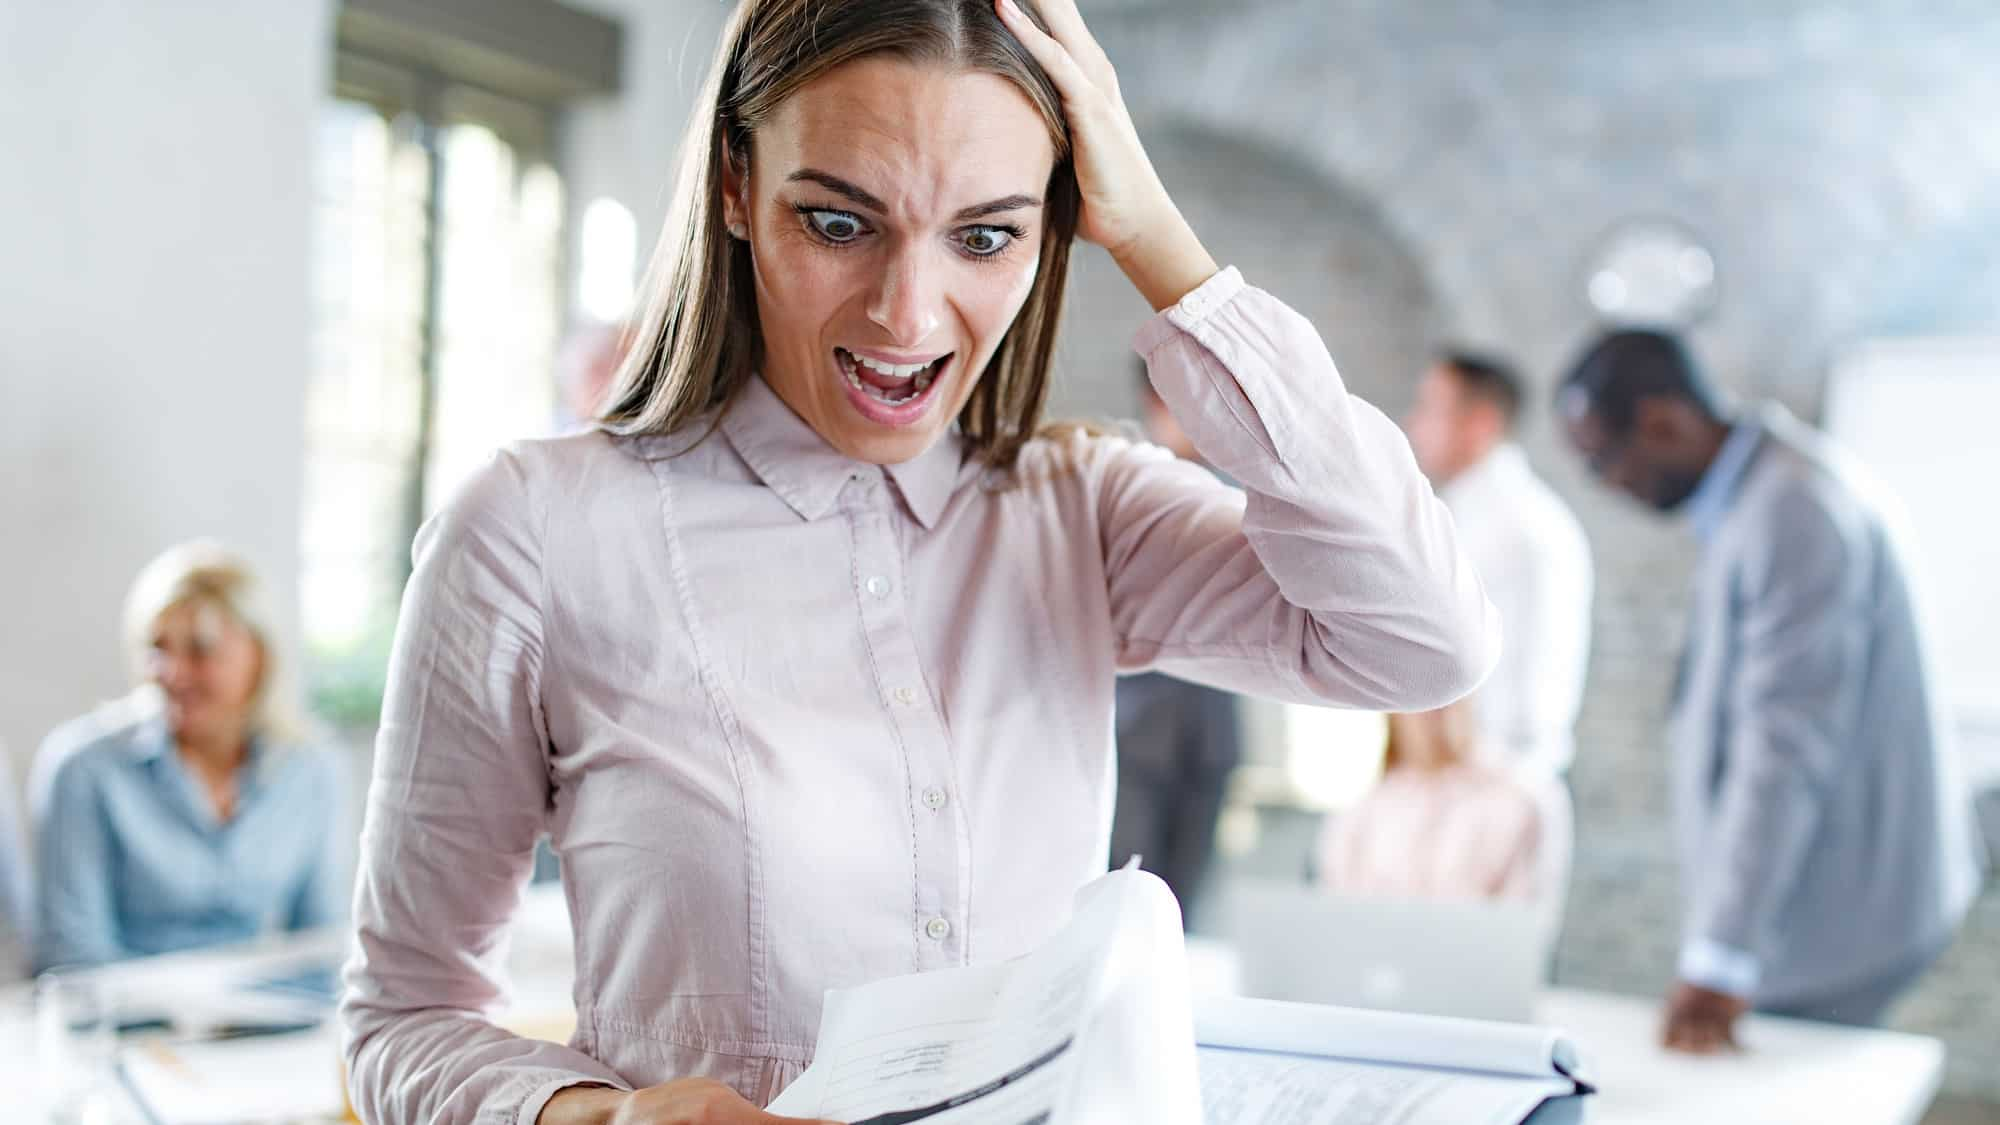 Young businesswoman analyzing shocking paperwork in disbelief at the office. Her colleagues are in the background.